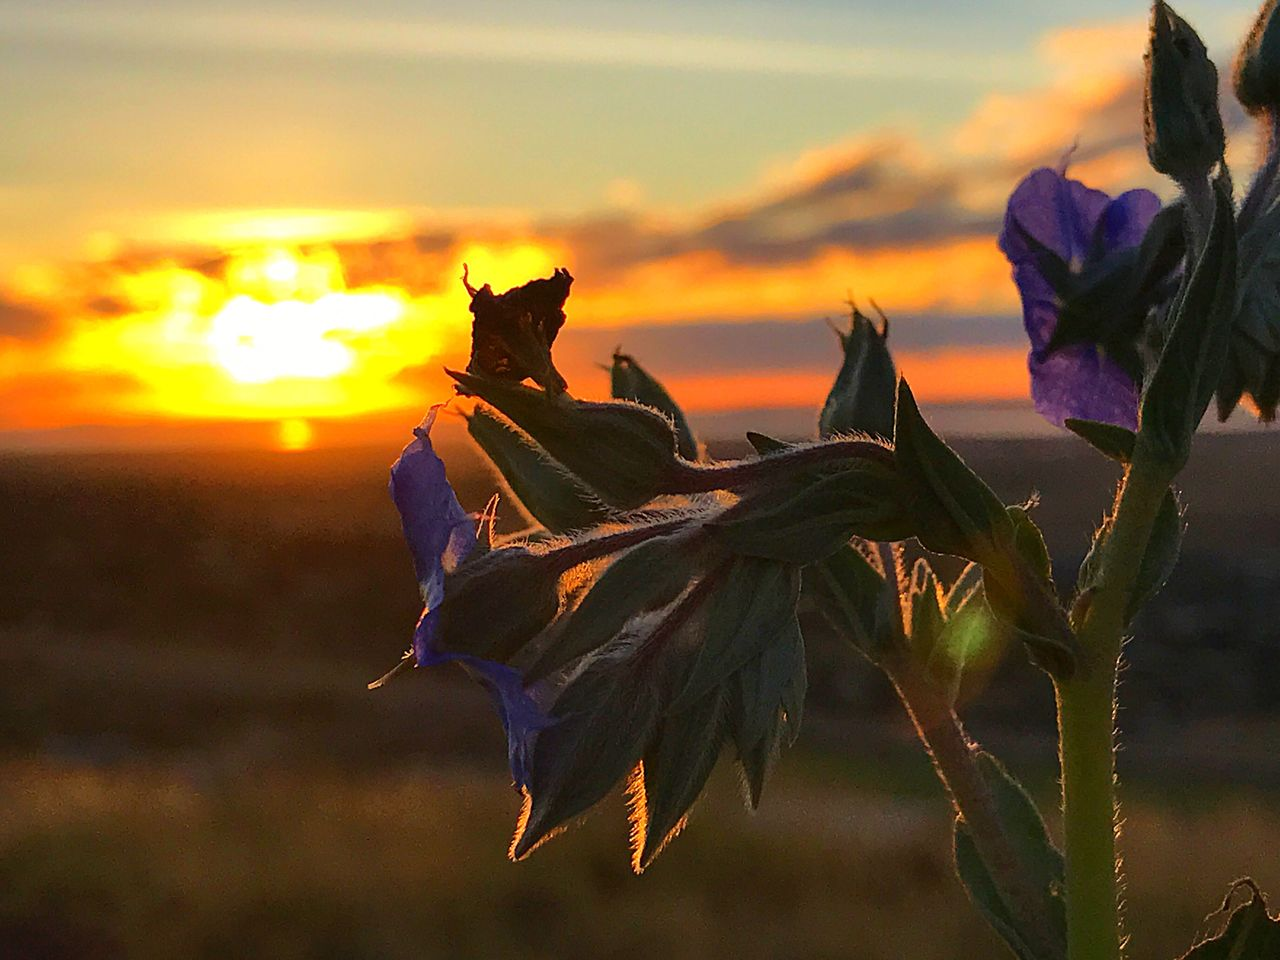 nature, sunset, beauty in nature, flower, sky, outdoors, no people, plant, petal, growth, leaf, close-up, fragility, water, day, animal themes, flower head, freshness